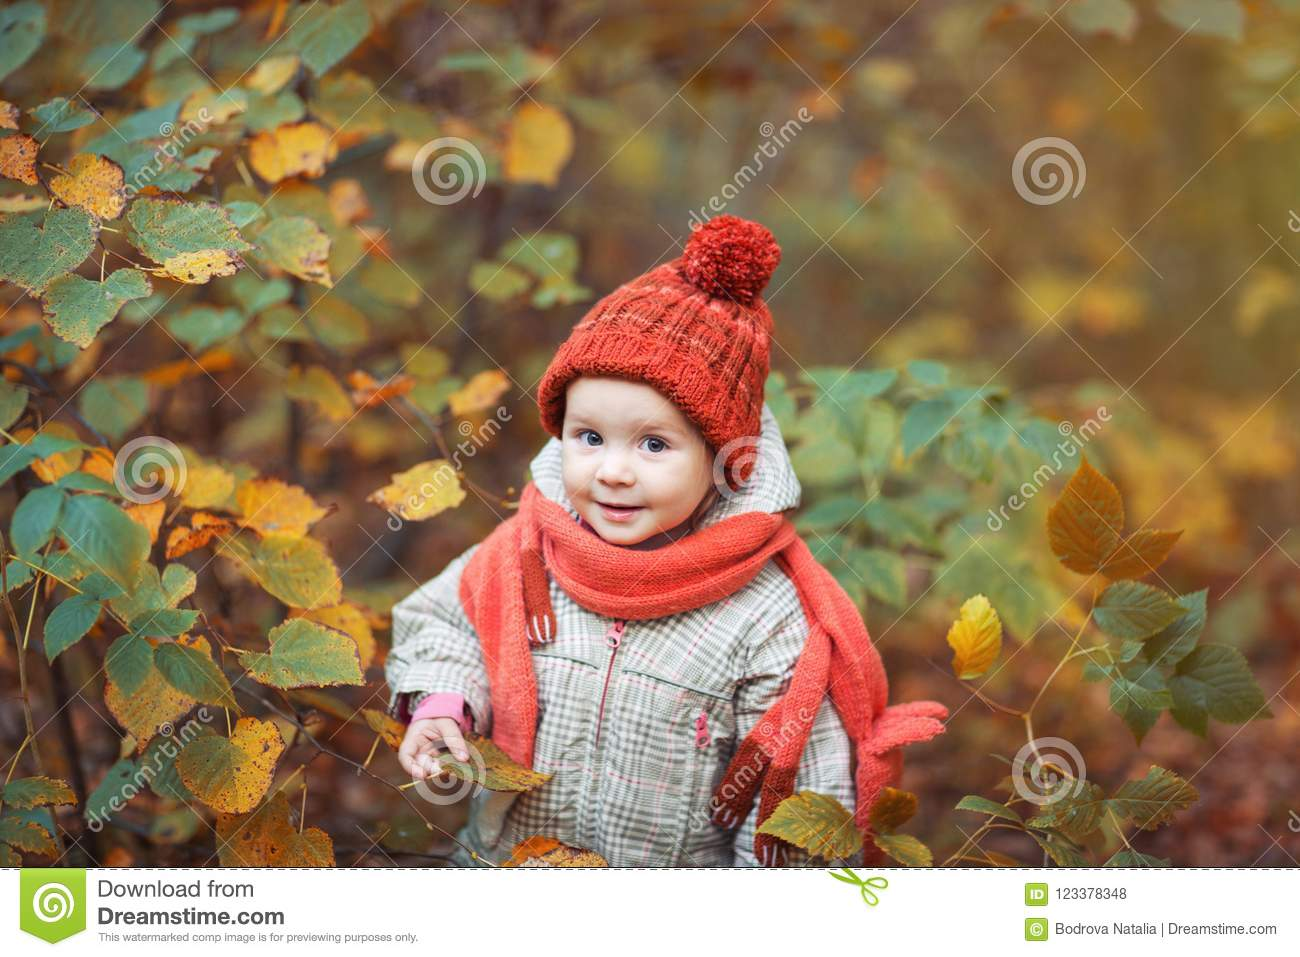 e04f3482f Cute Baby In Autumn Clothes. Child In Knitted Hats And Scarf Stock ...